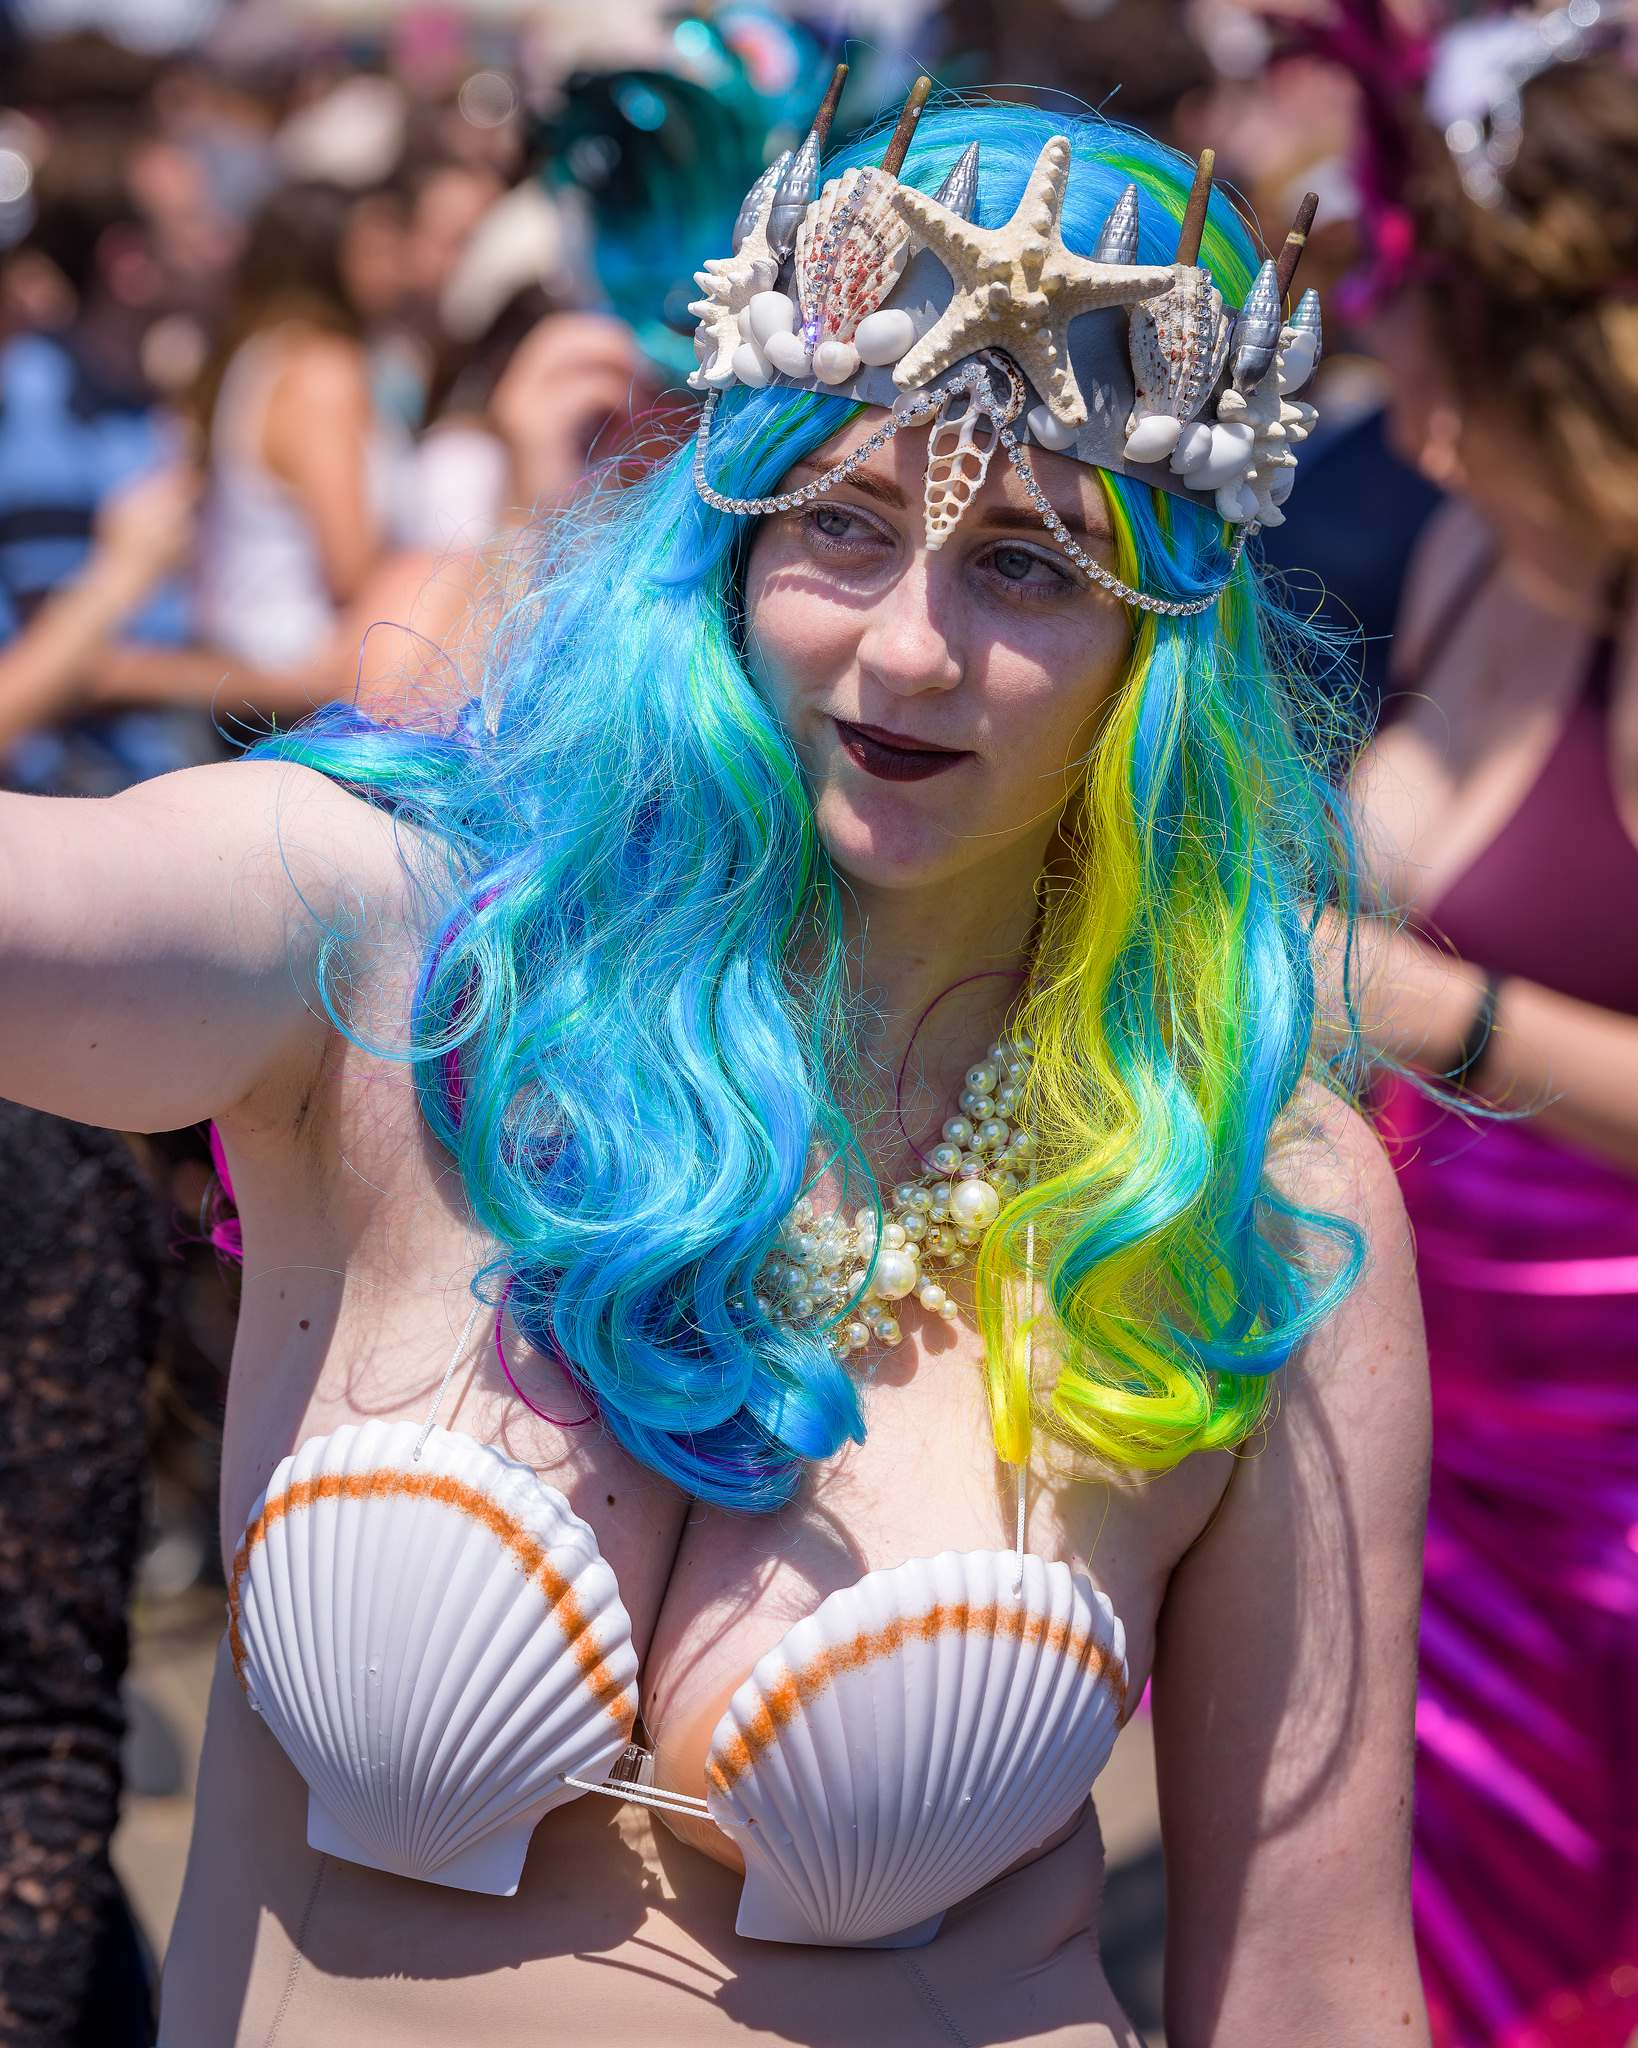 mermaid parade12 2016 Coney Island Mermaid Parade in NYC